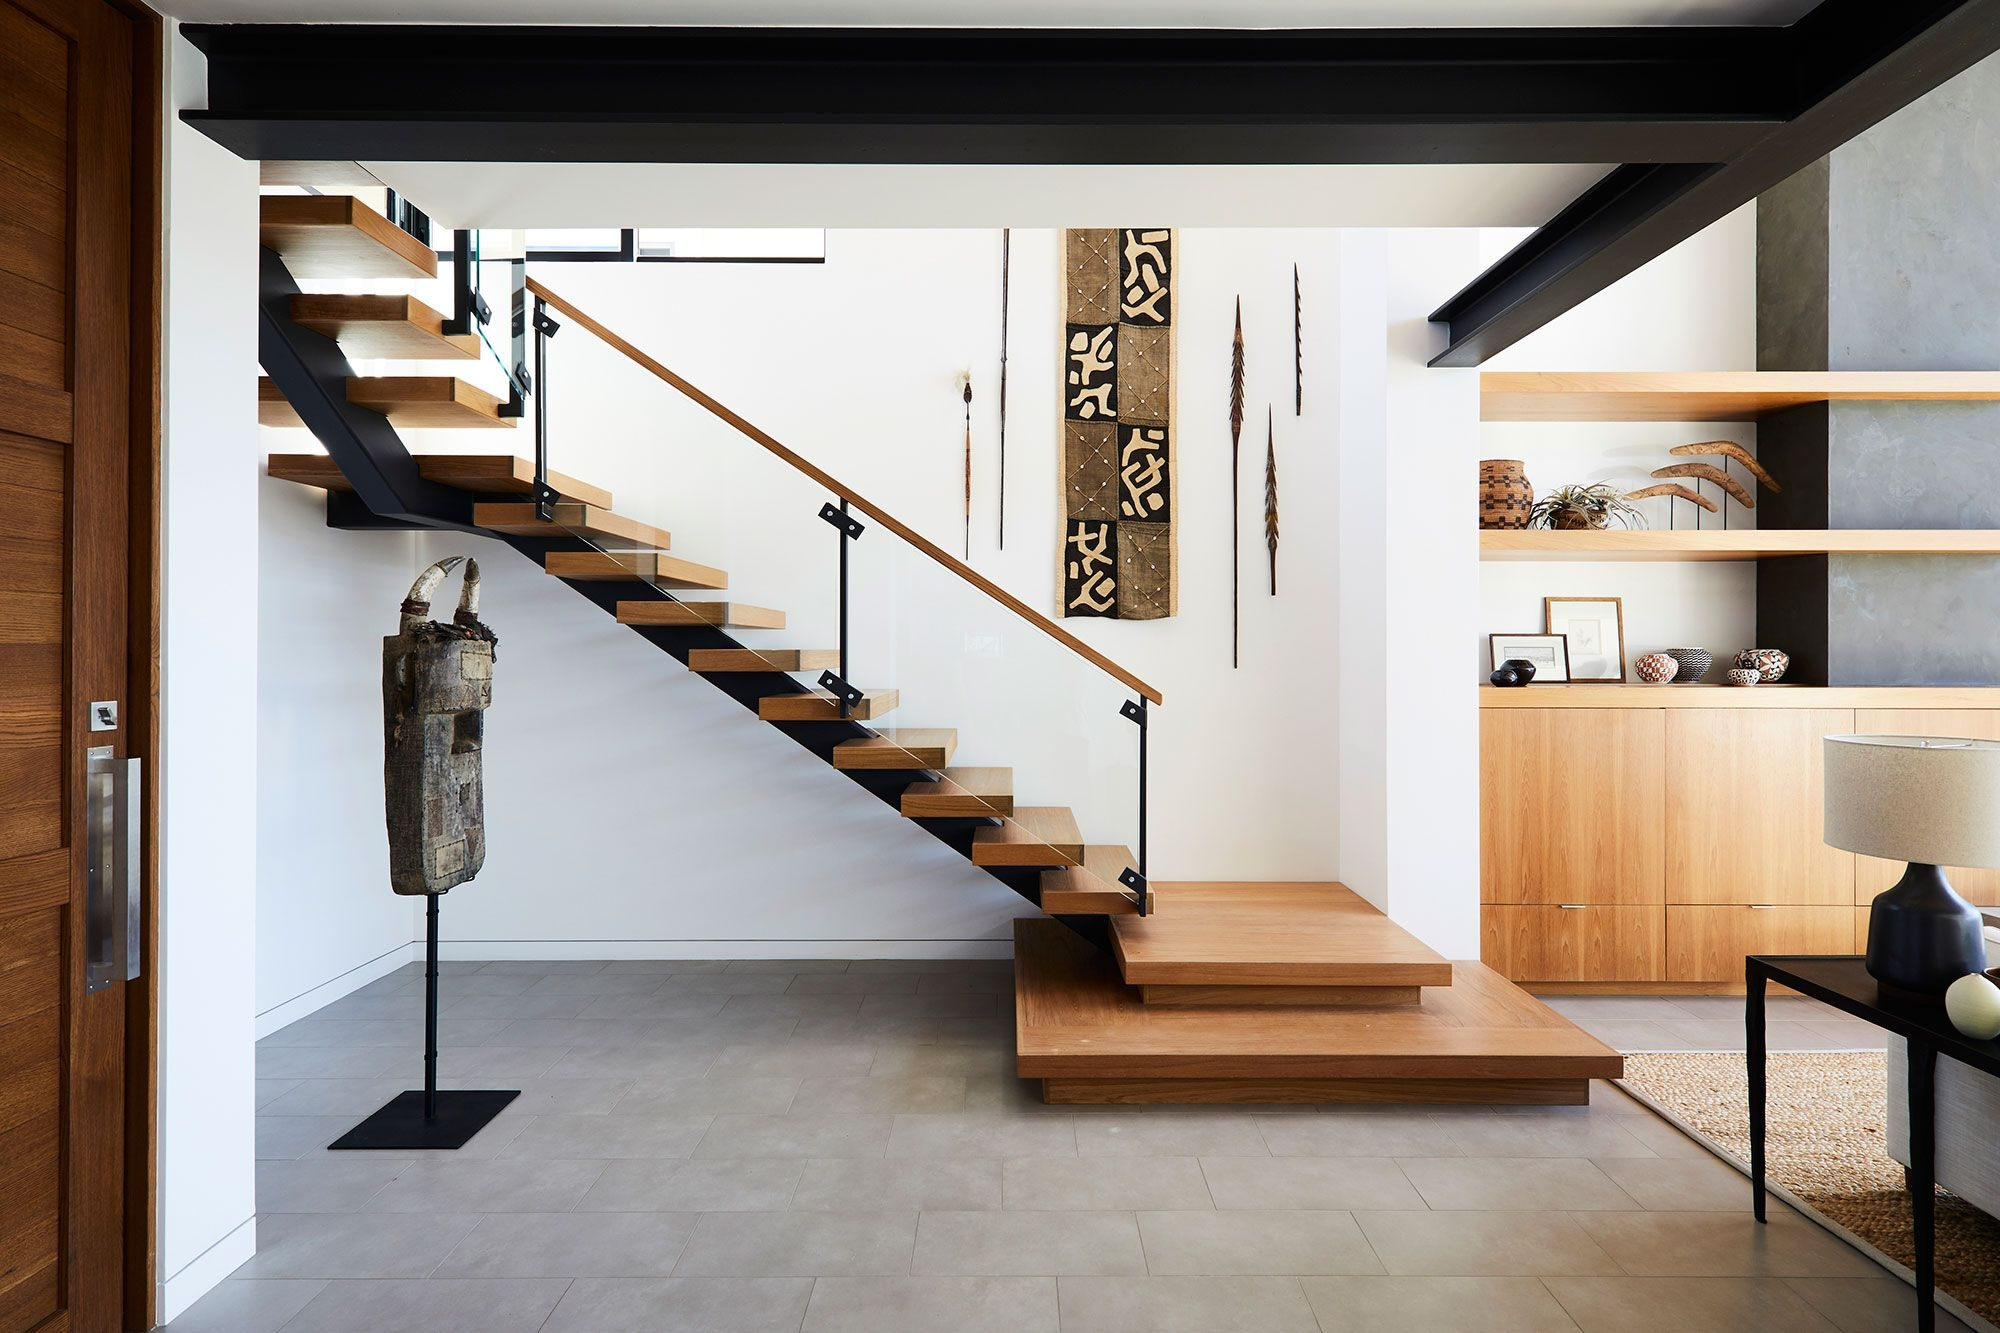 55 Best Staircase Ideas Top Ways To Decorate A Stairway | Handrail For Narrow Staircase | Exterior | Self Standing Narrow | Free Standing | Victorian | Small Staircase